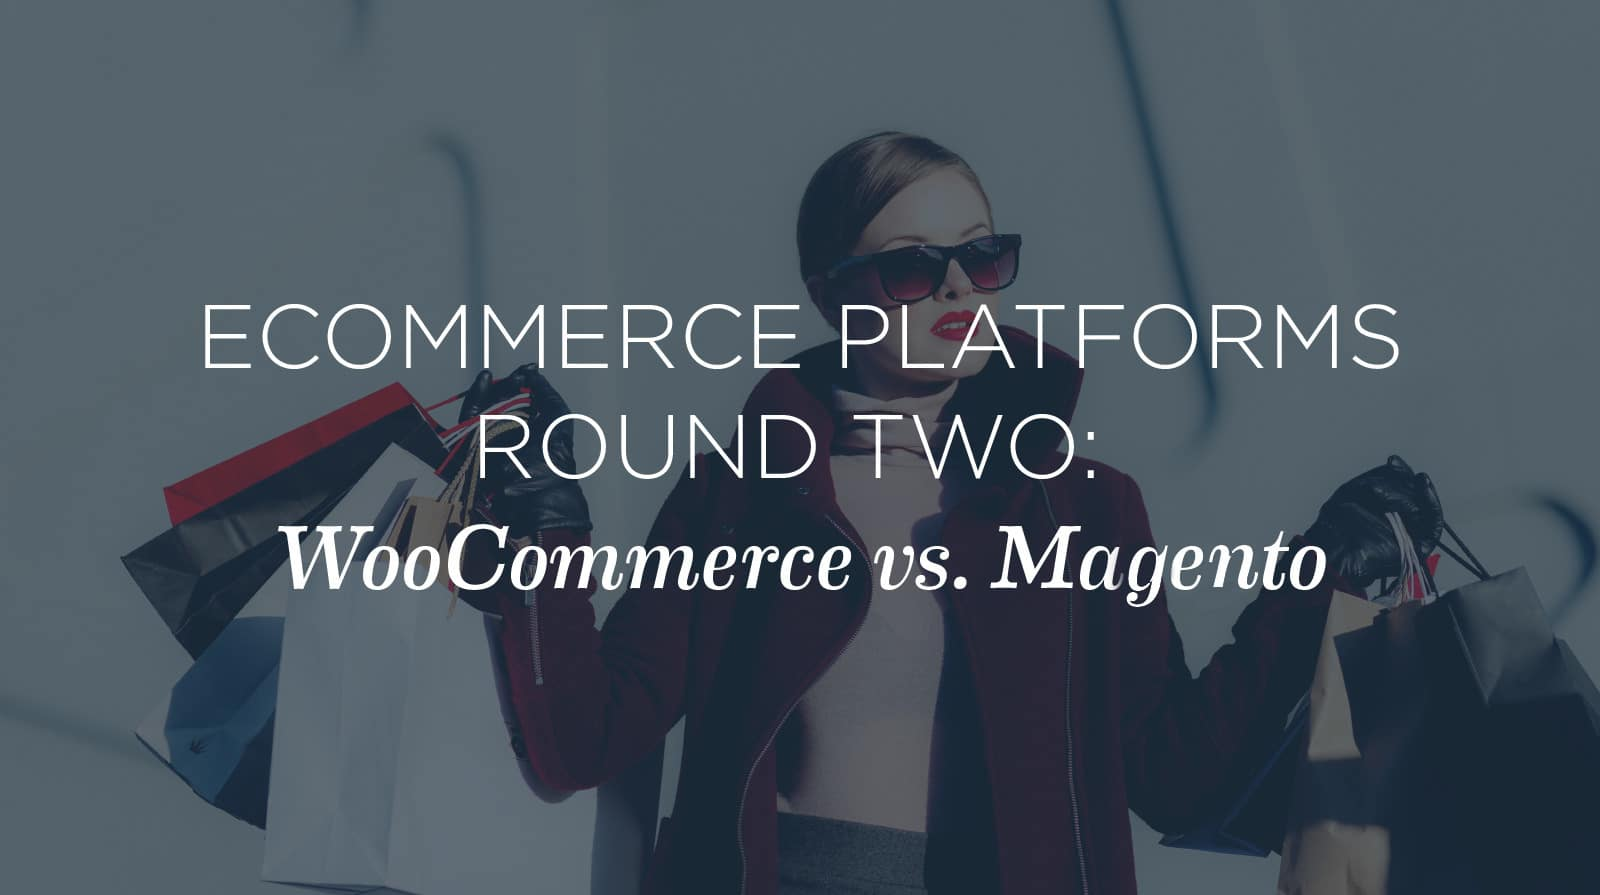 Ecommerce Platforms Round Two WooCommerce vs. Magento